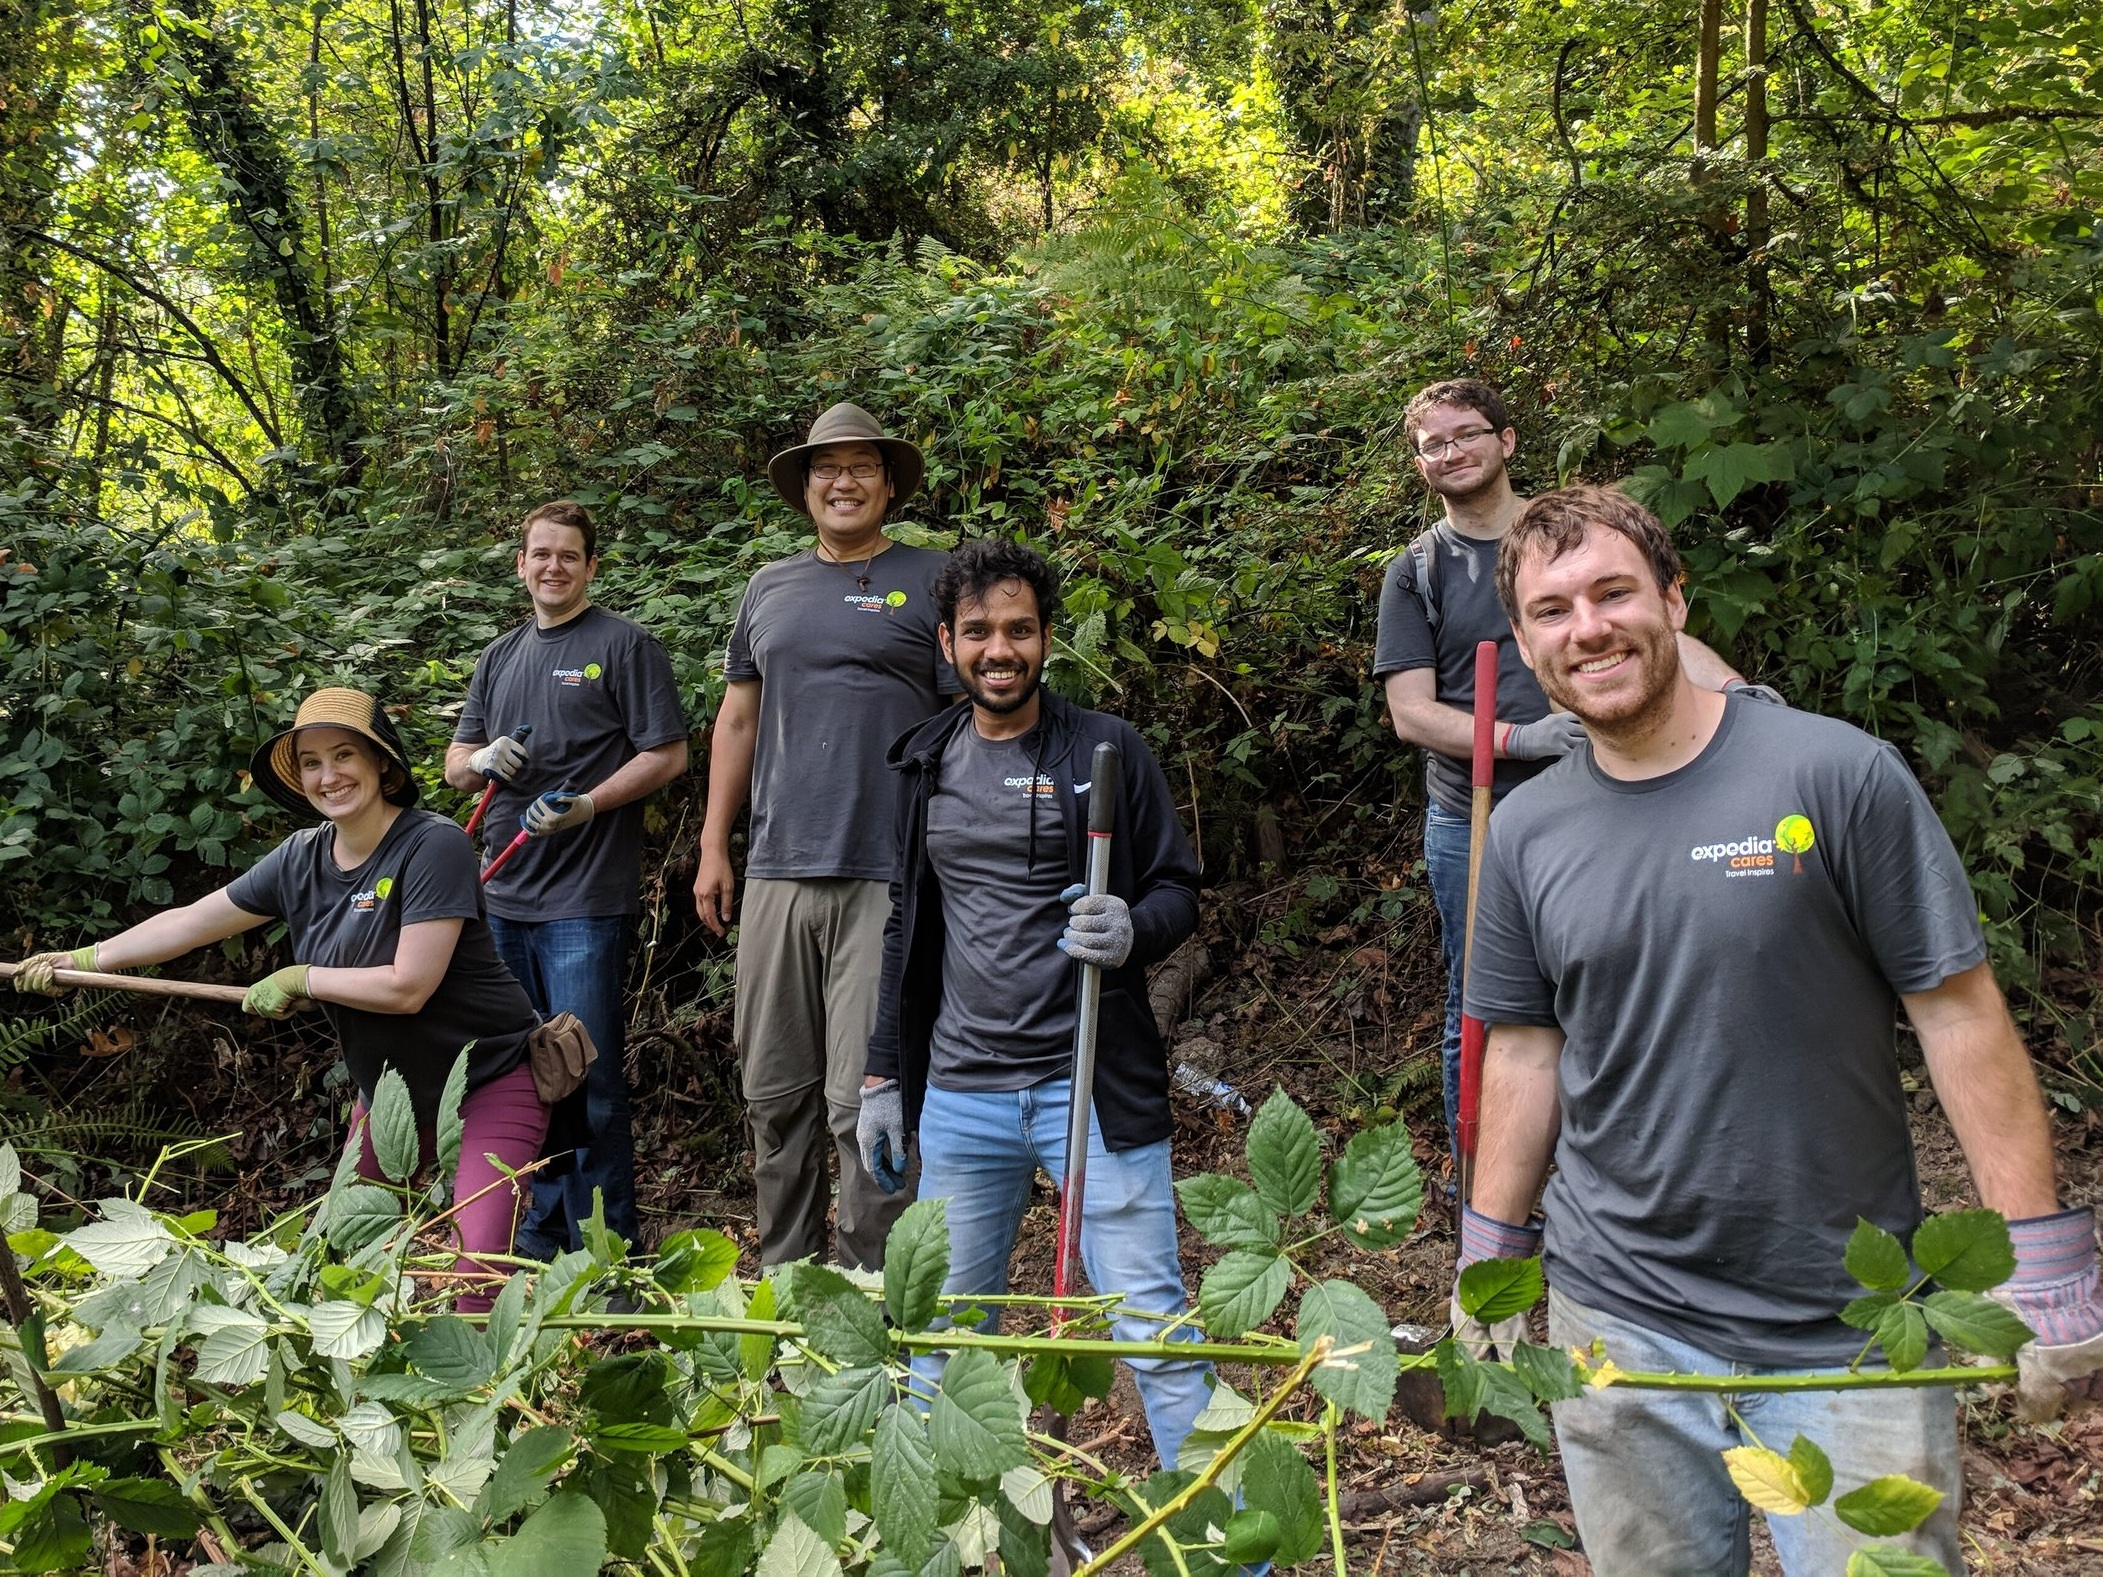 Bellevue+Long+Park+Cleanup-+Day+of+Caring+2018.jpg